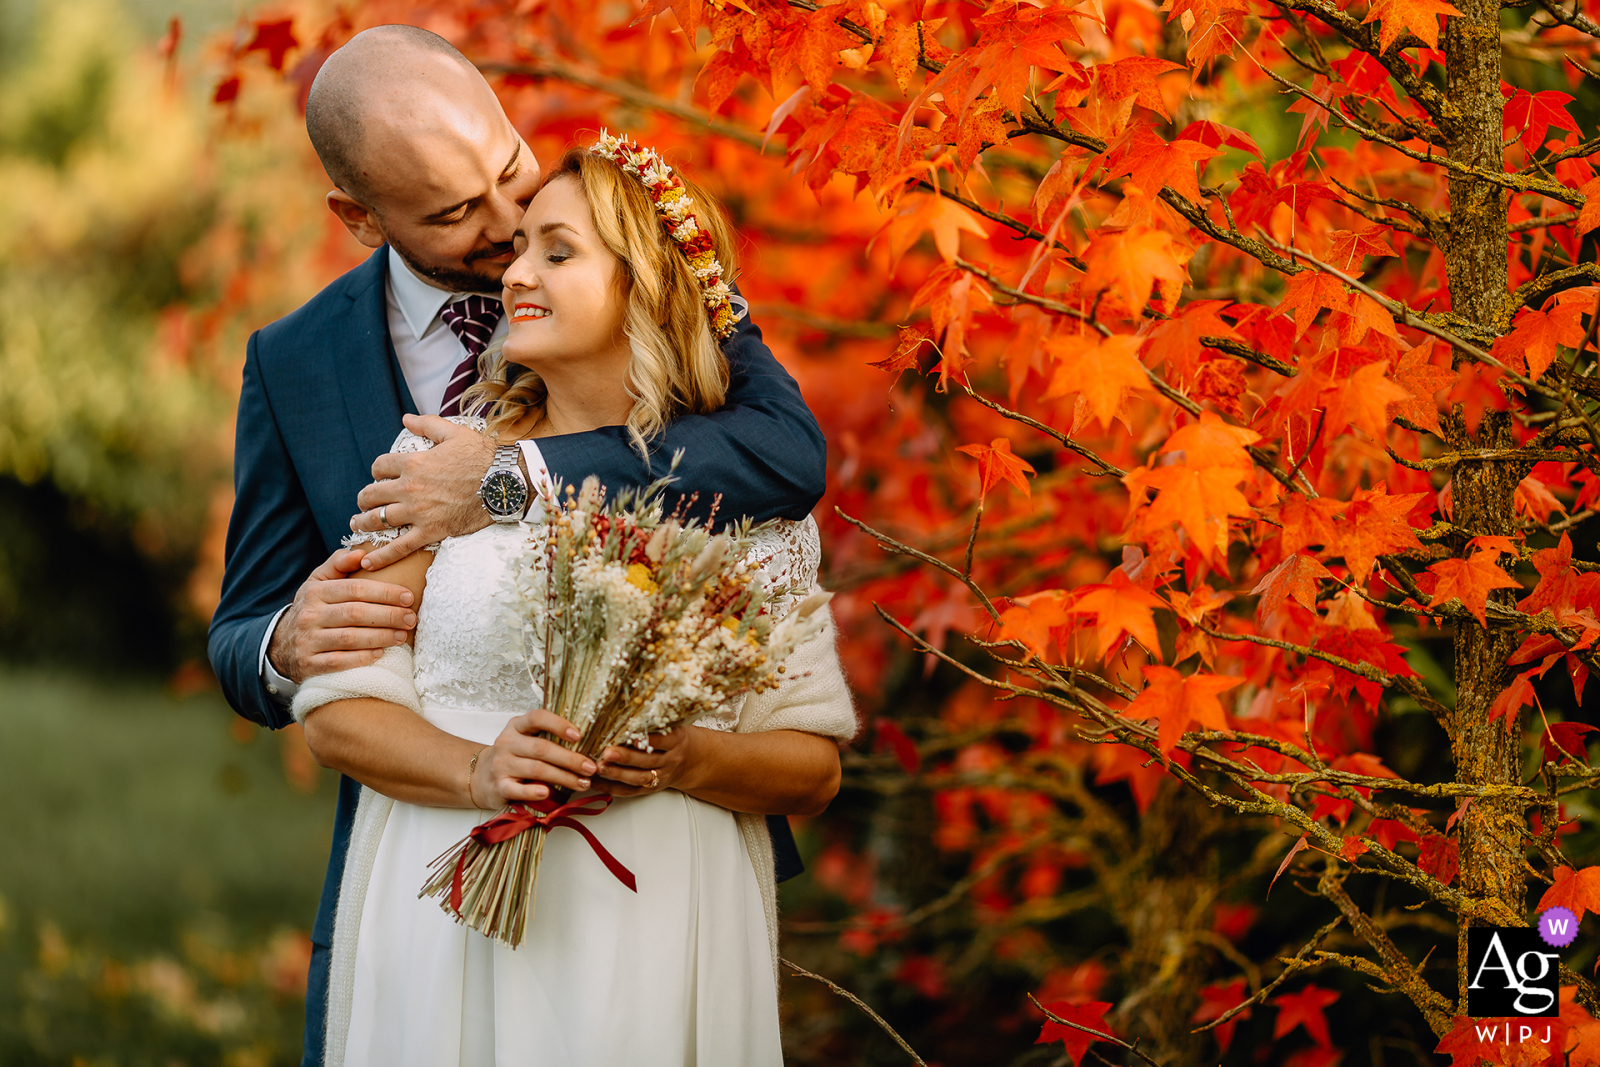 Auvergne-Rhône-Alpes wedding photographer captured this artistic wedding portrait of the bride and groom with fall foliage